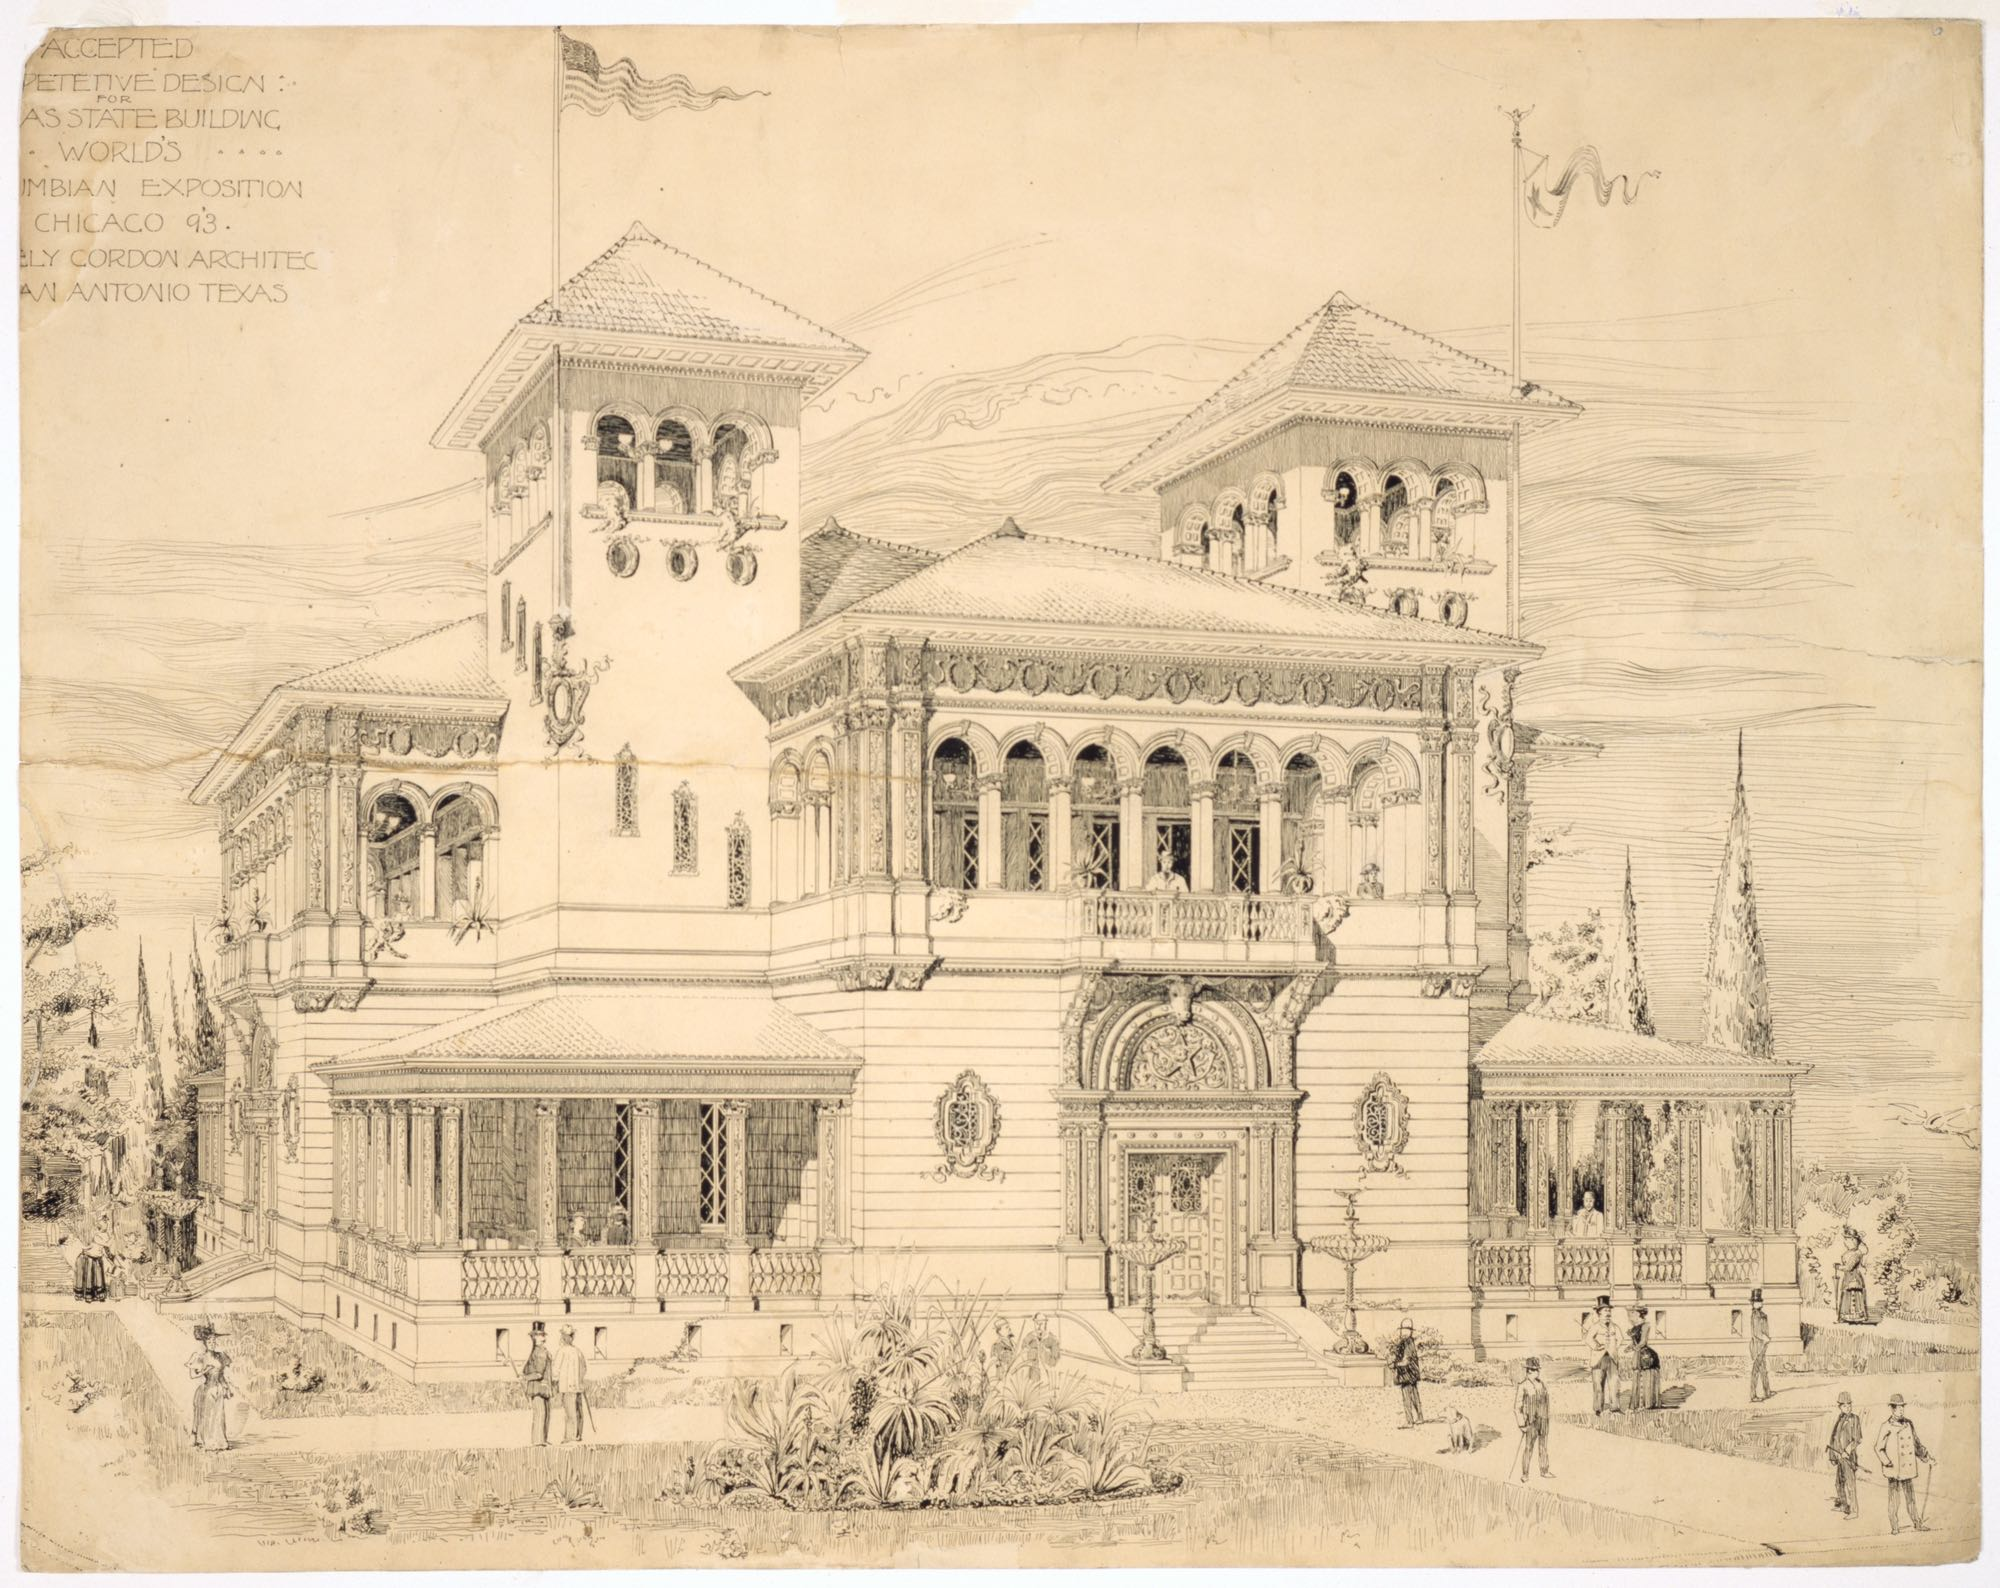 Texas State Building -World's Columbian Exposition